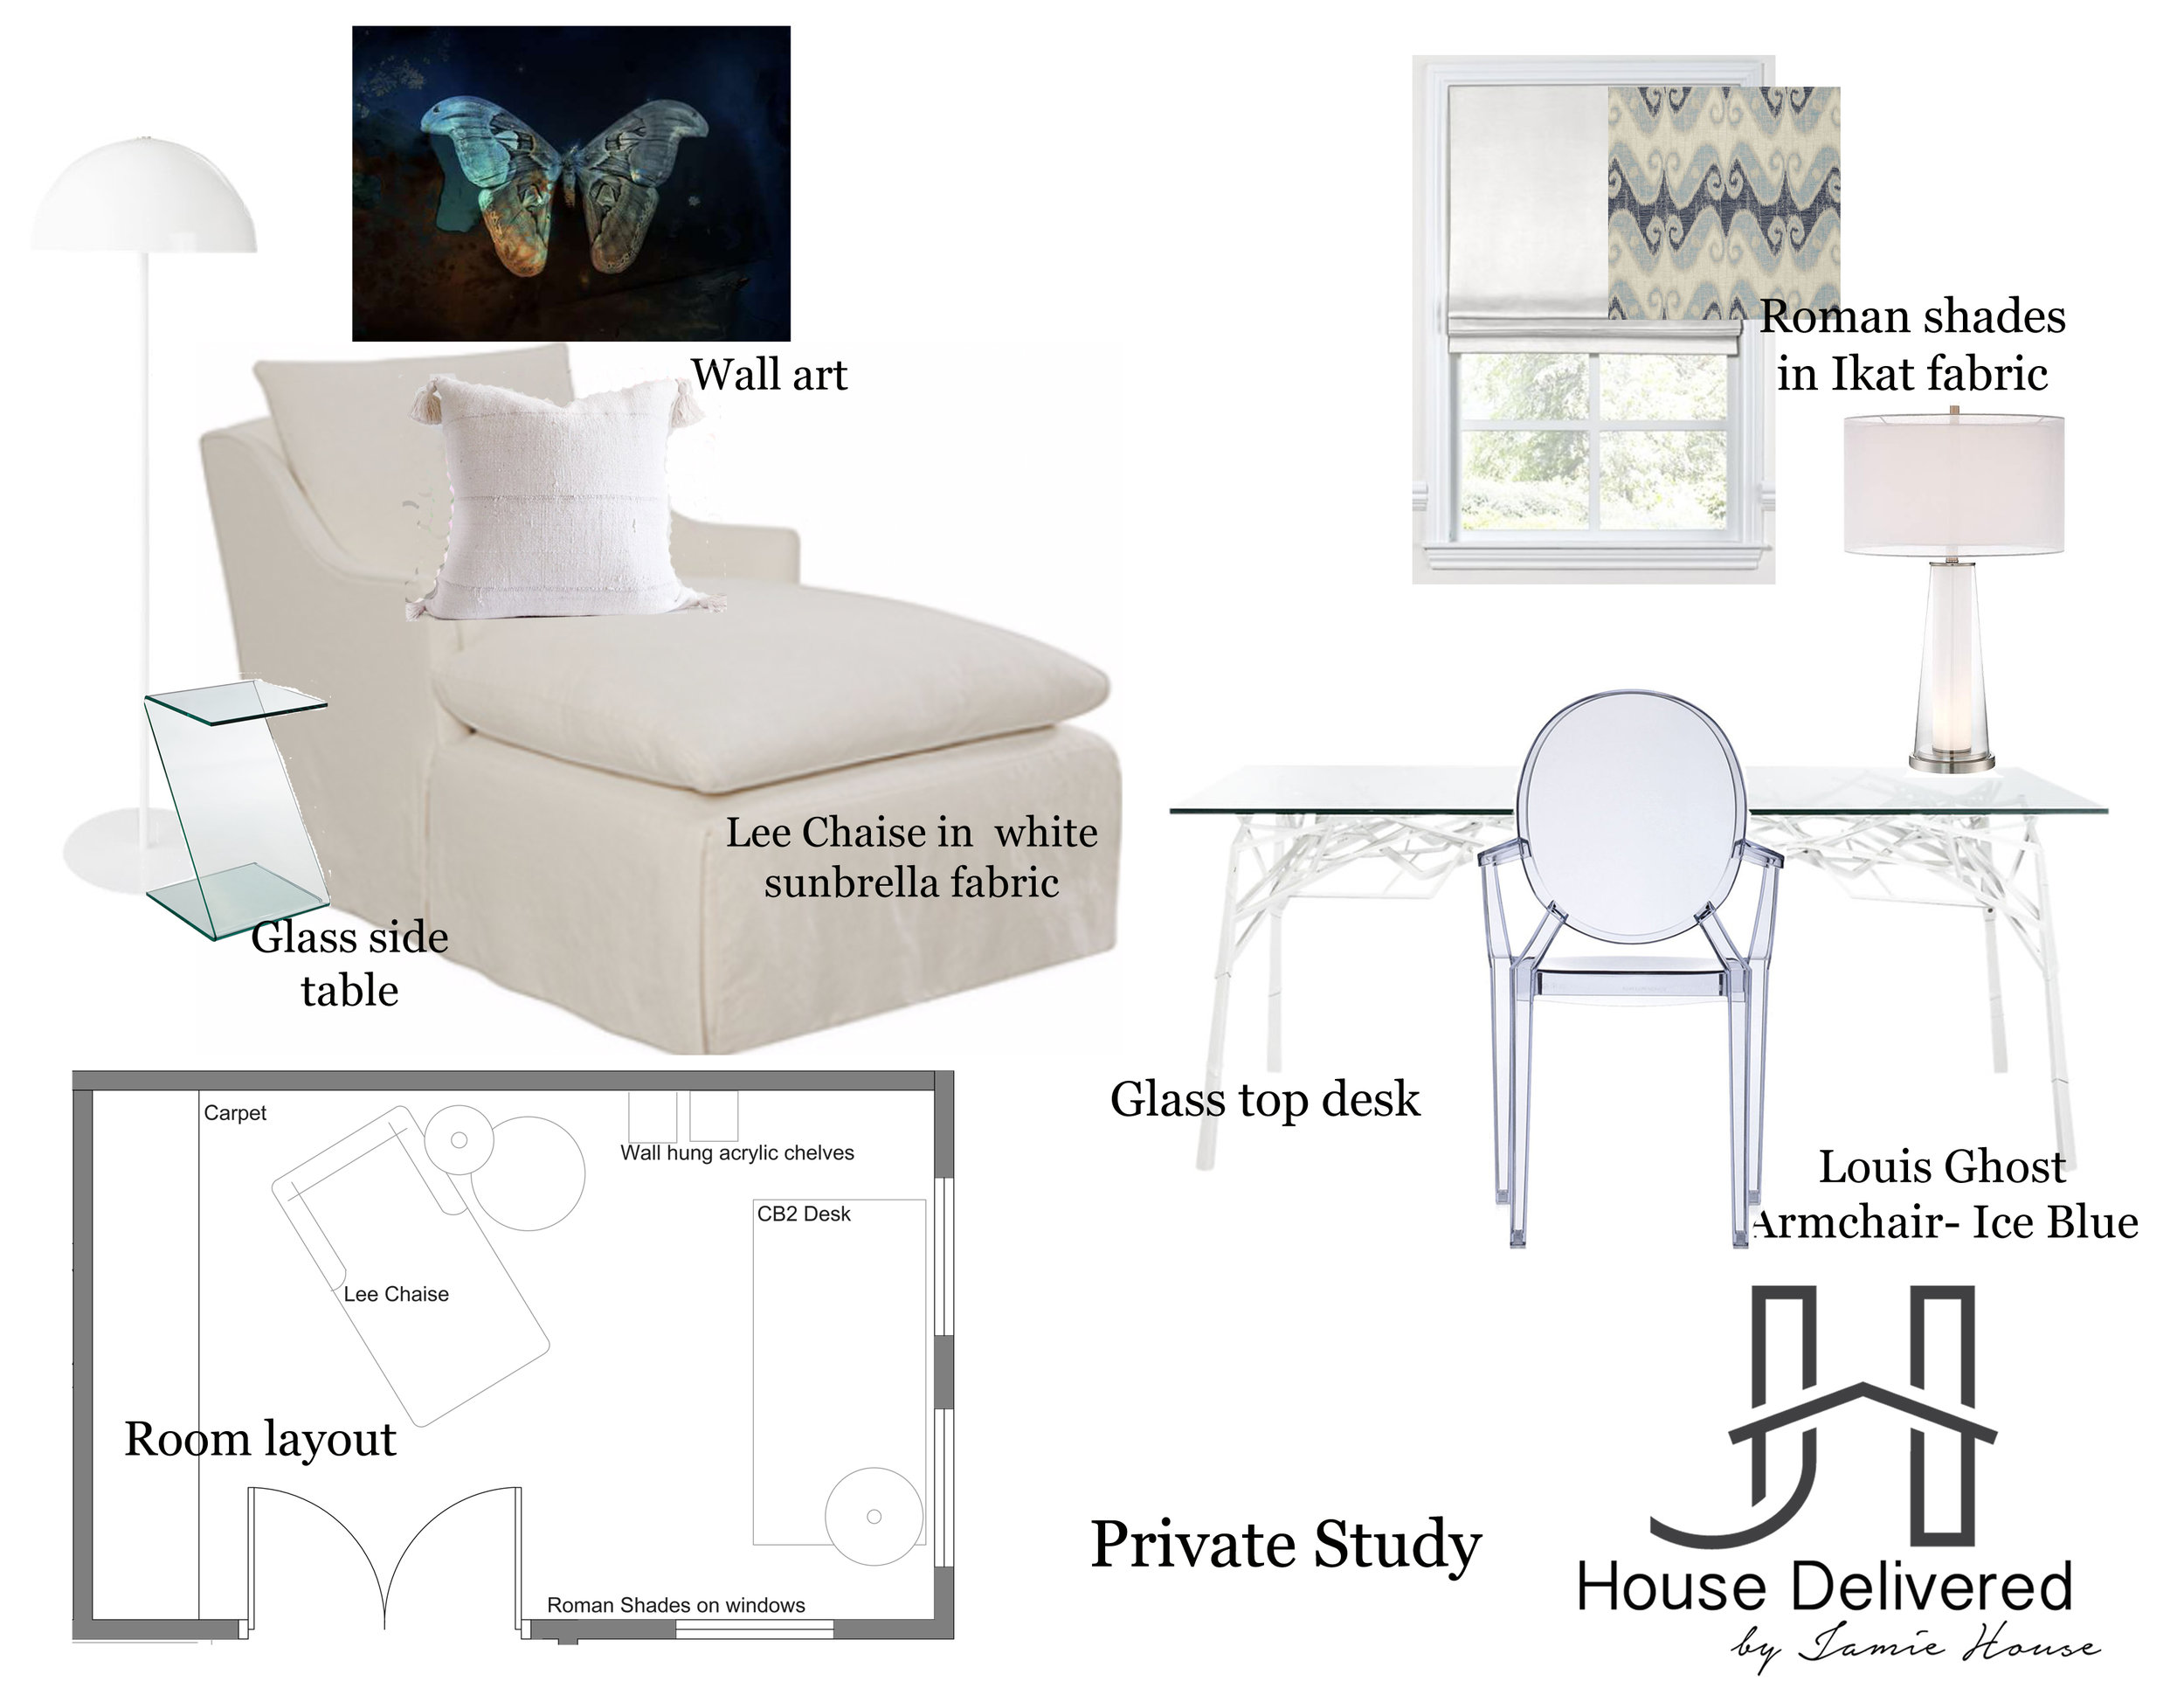 Feminine study design moodboard by House Delivered, Jamie House Design's EDesign service